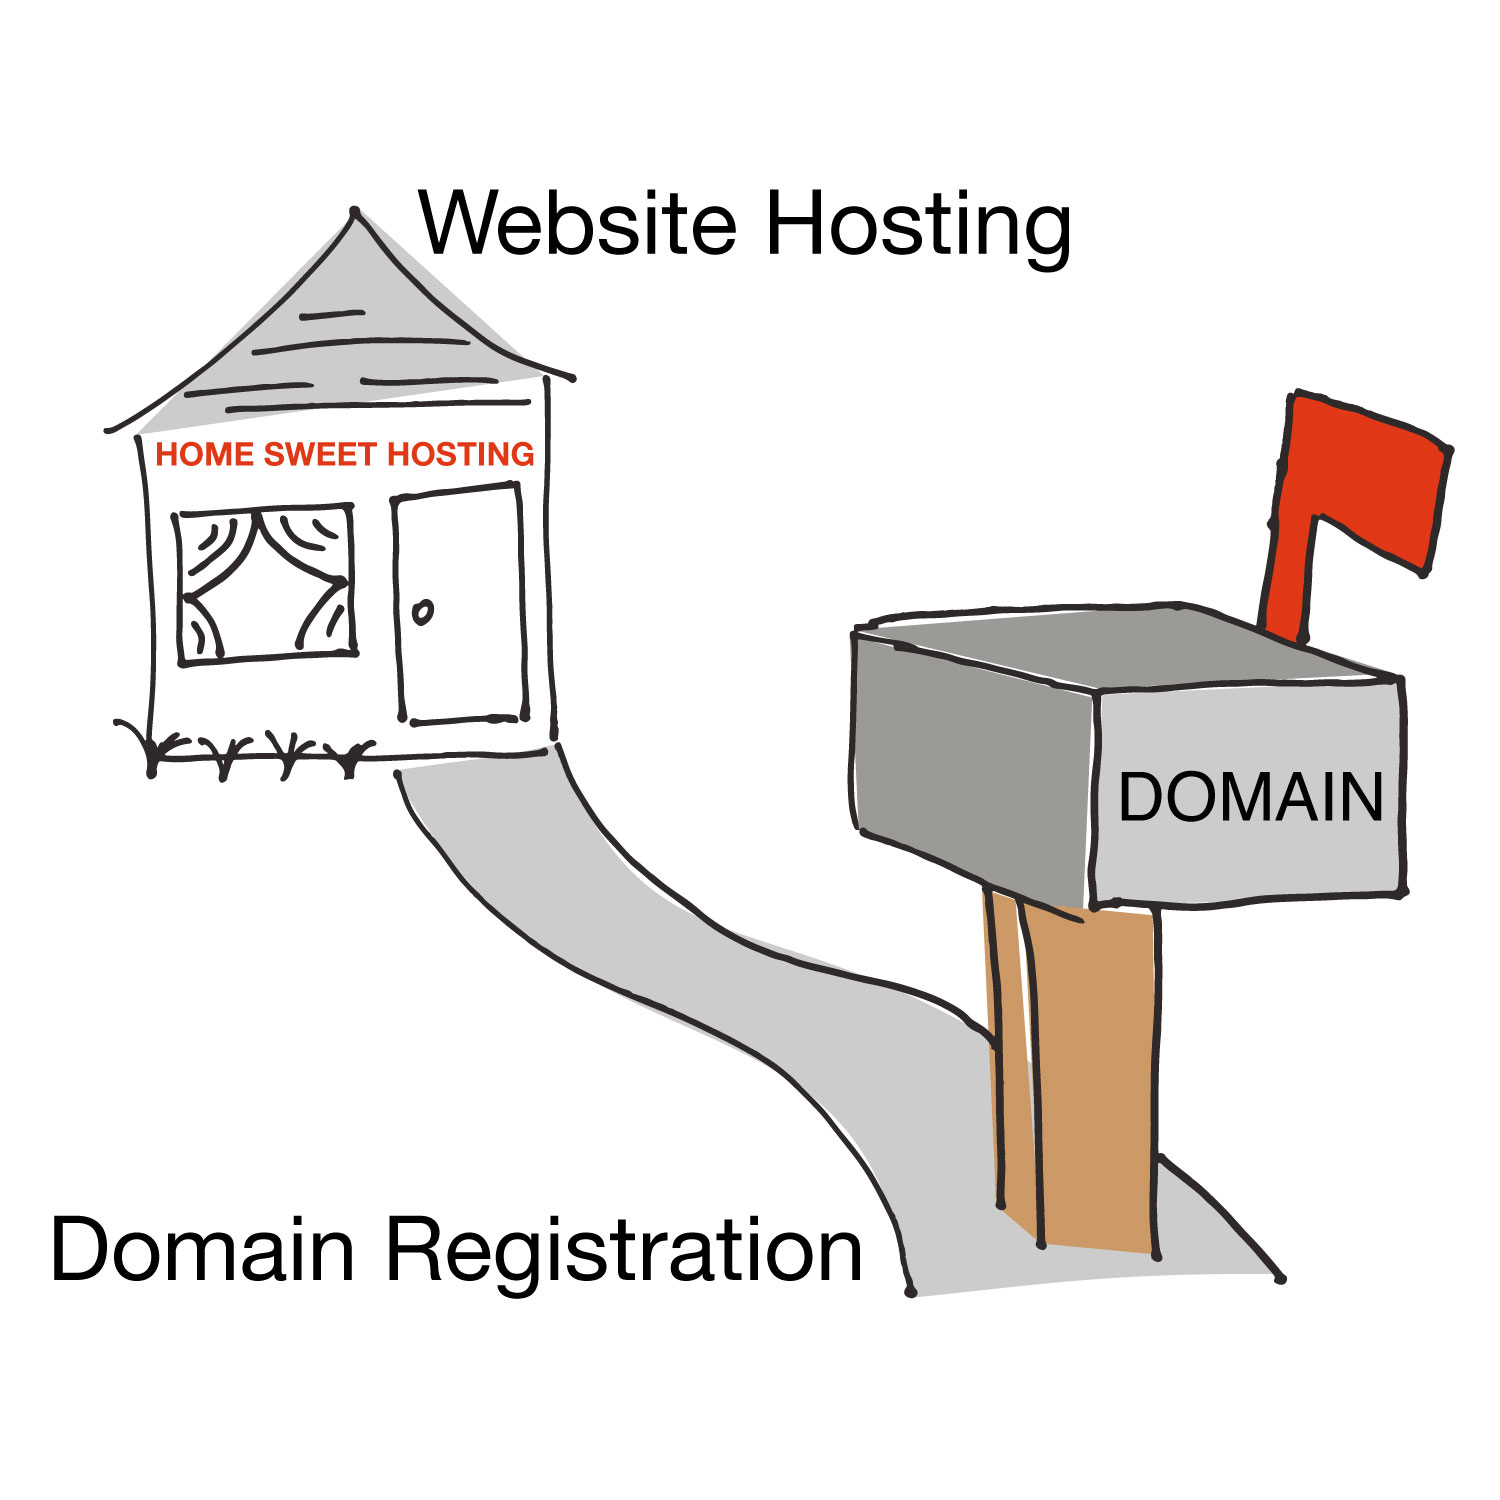 Website hosting domain registration